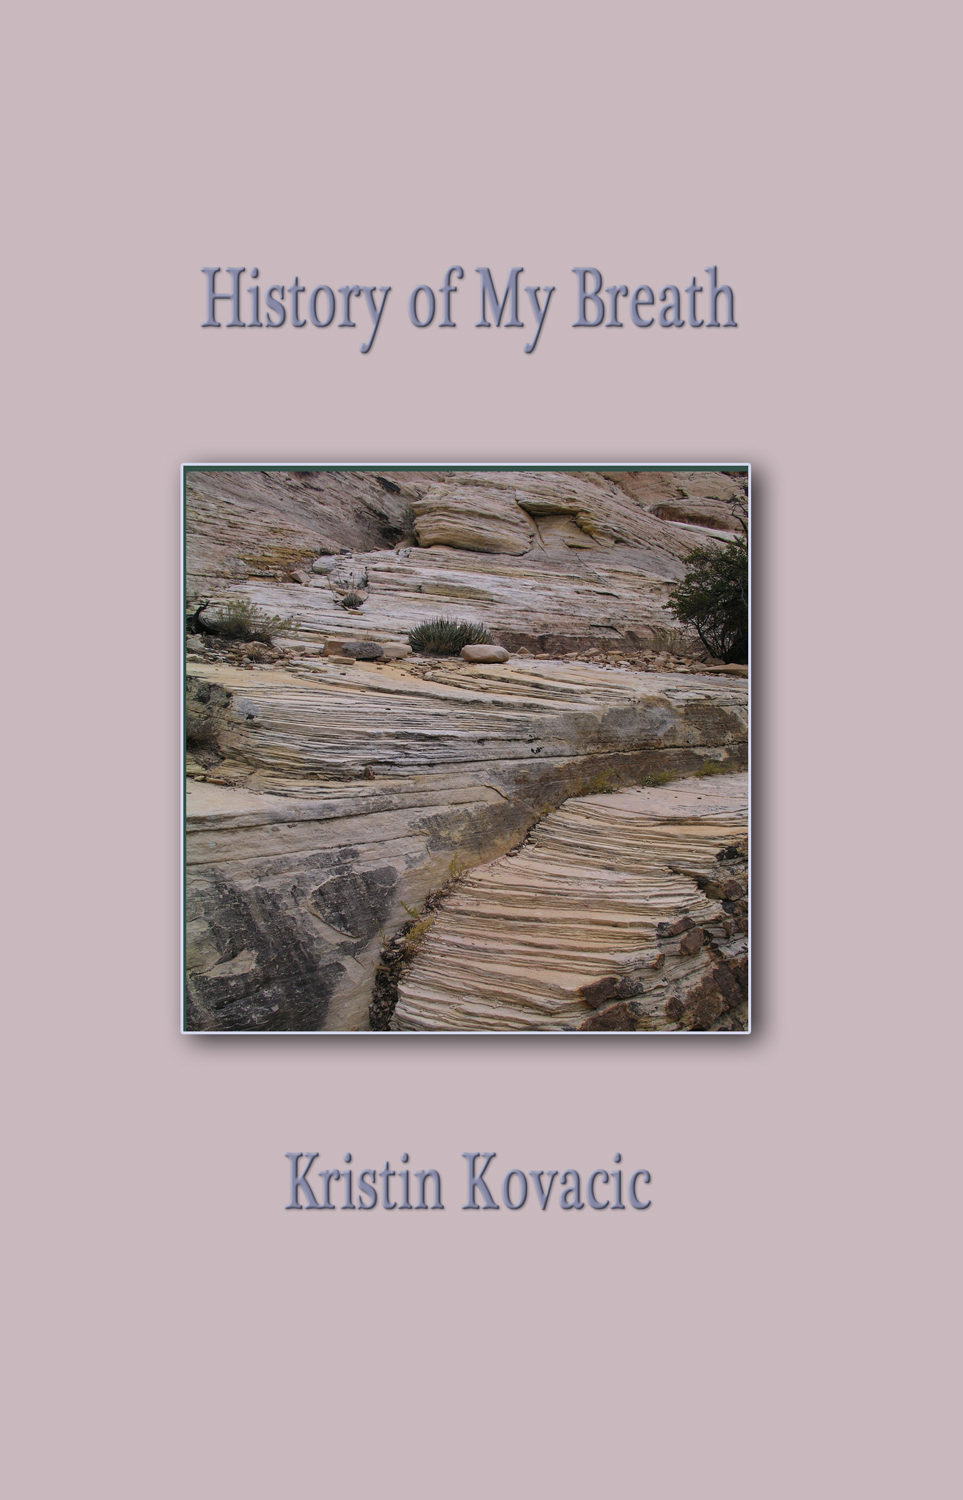 History of My Breath